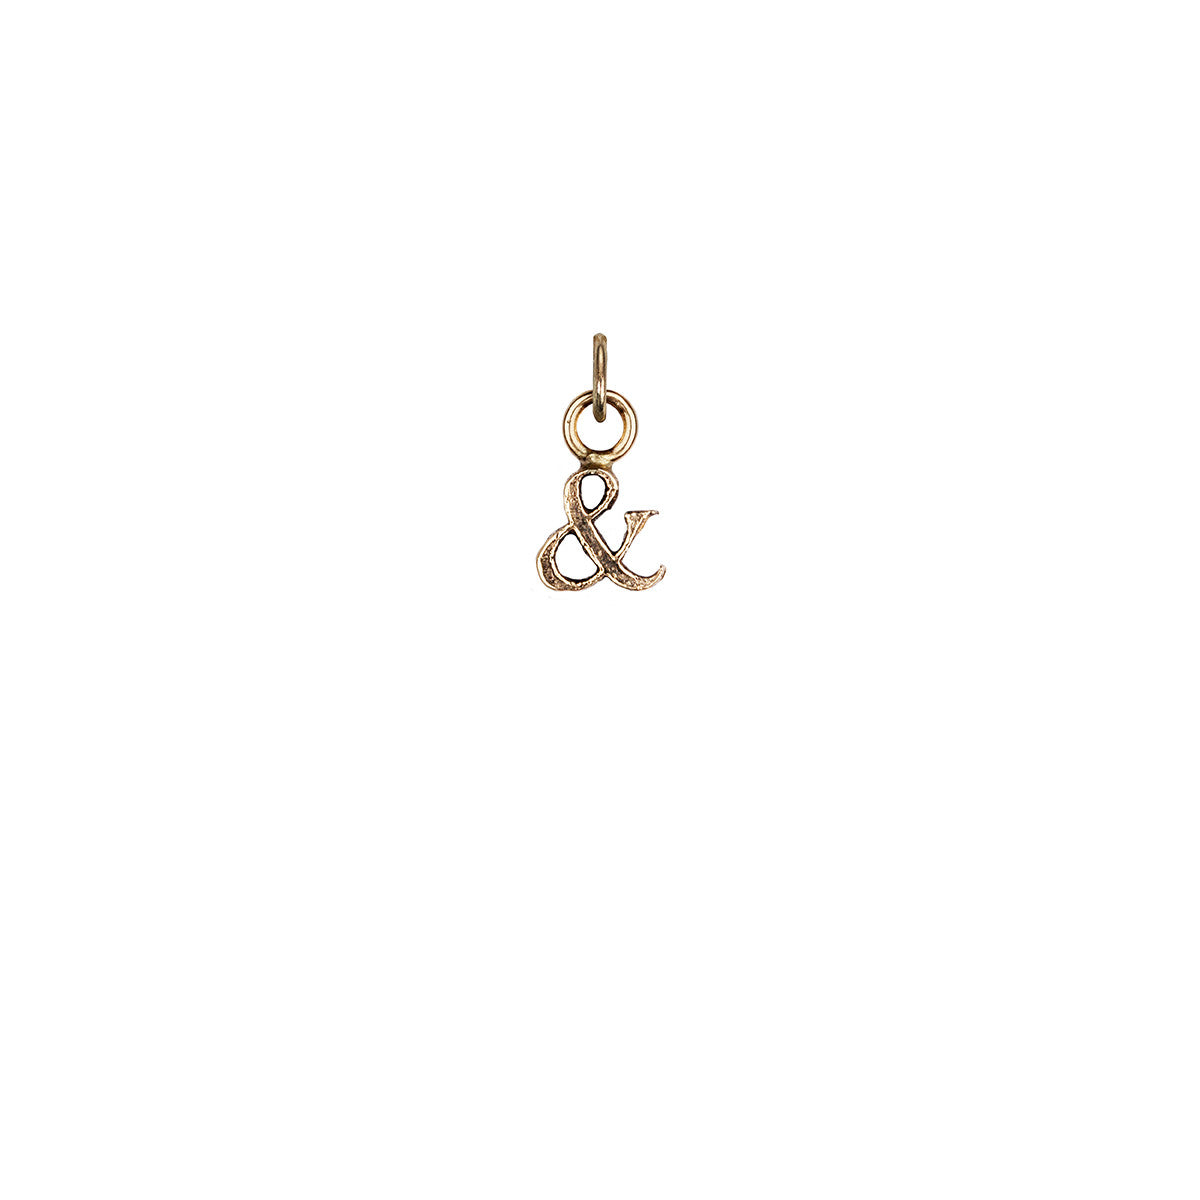 Ampersand 14K Gold Charm